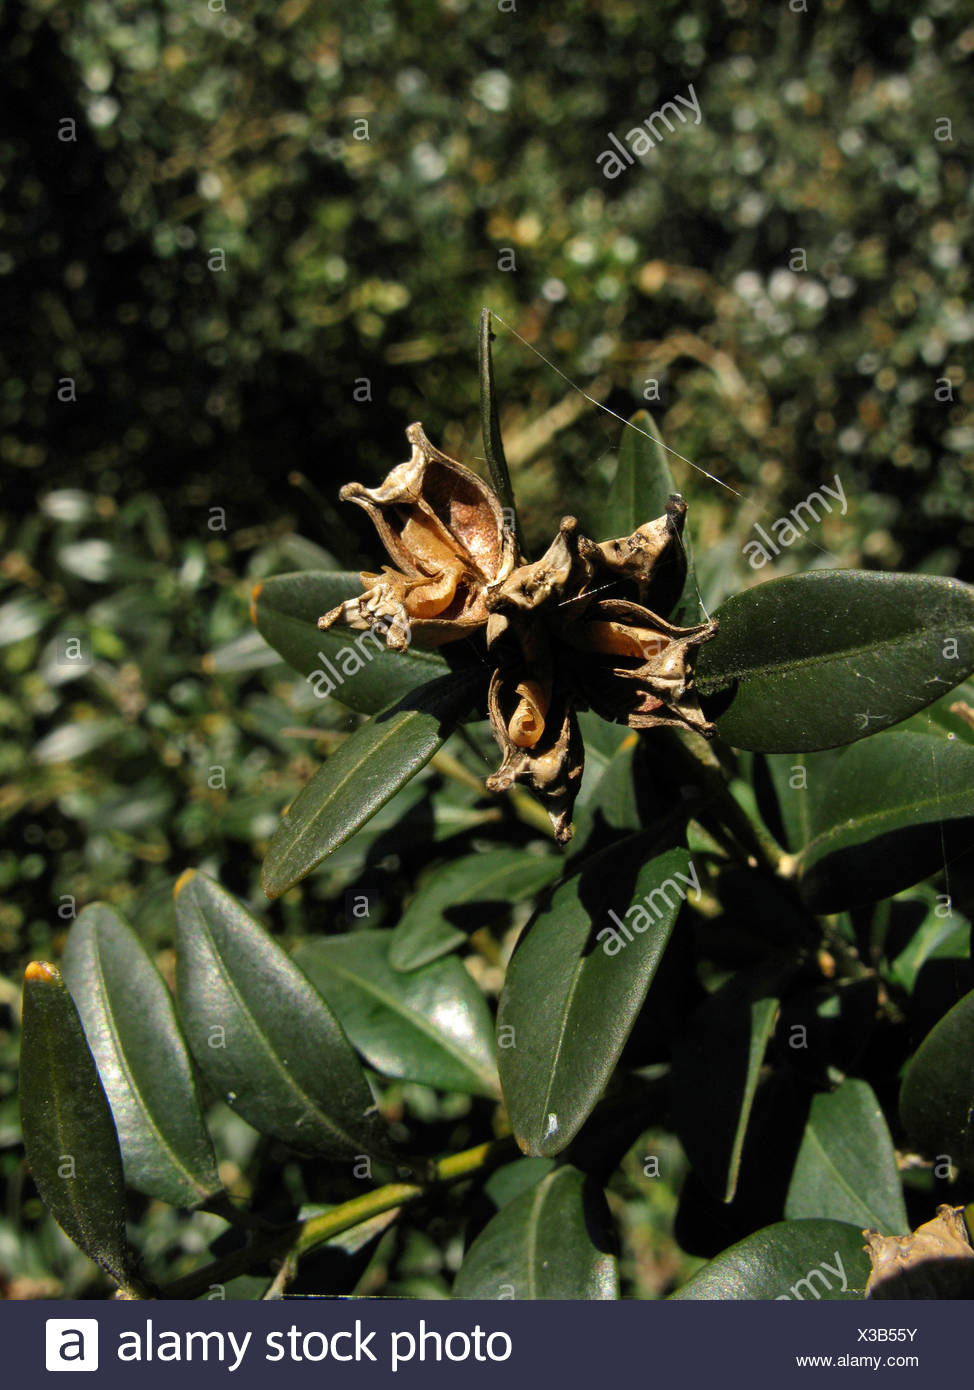 common box, boxwood (Buxus sempervirens), fruits on a branch, Germany, Baden-Wuerttemberg Stock Photo